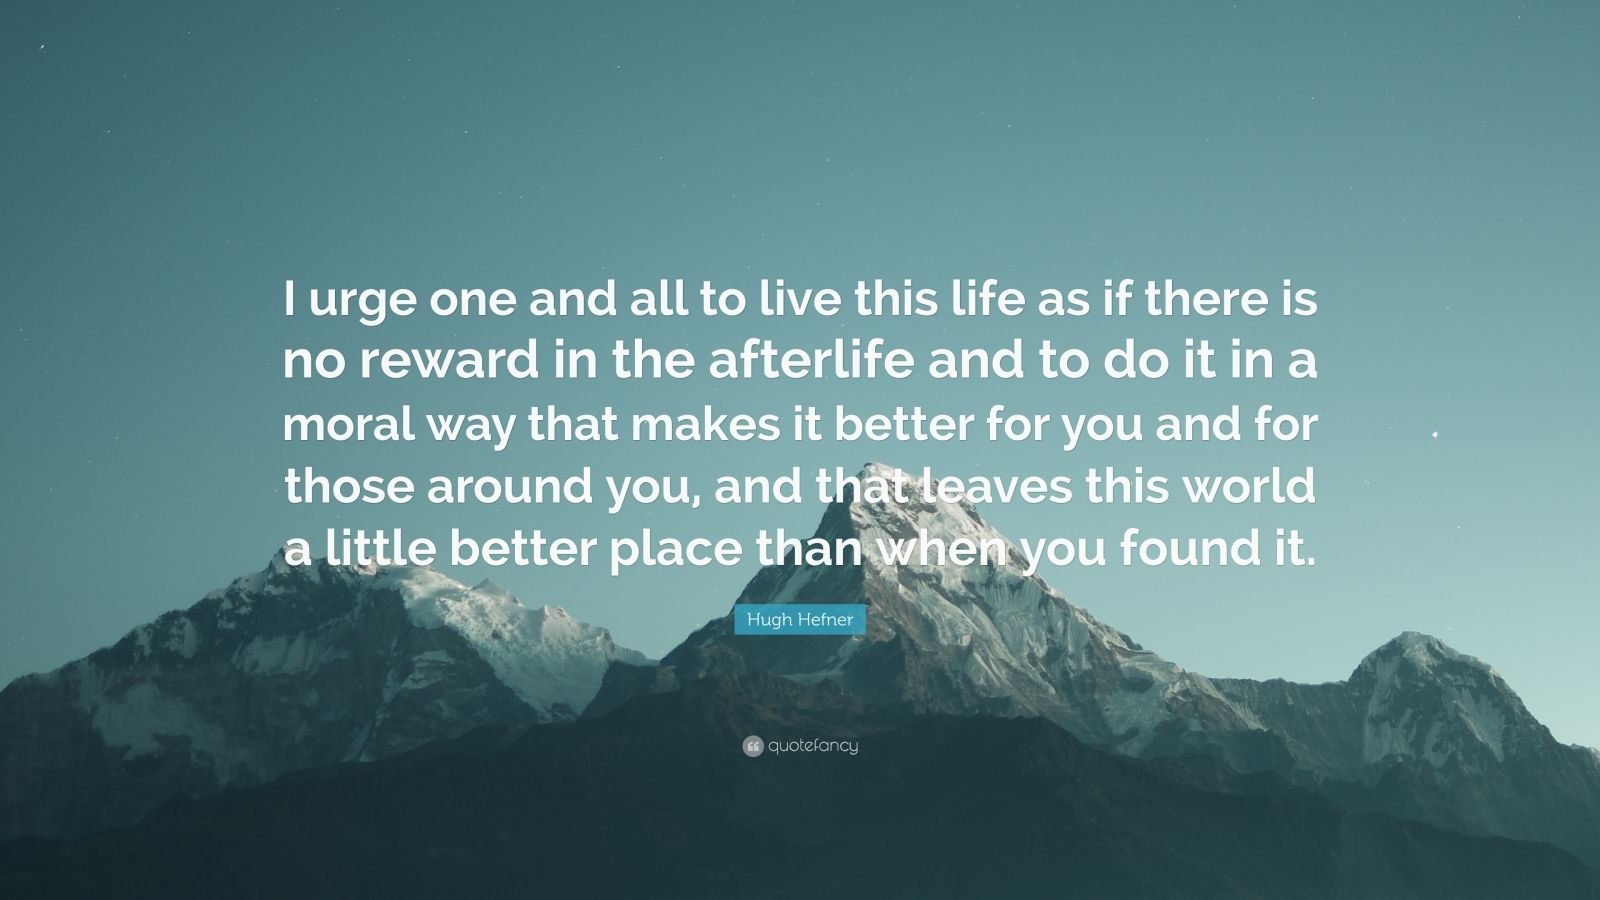 """Hugh Hefner Quote: """"I urge one and all to live this life as if there is no reward in the afterlife and to do it in a moral way that makes it better for you and for those around you, and that leaves this world a little better place than when you found it."""""""